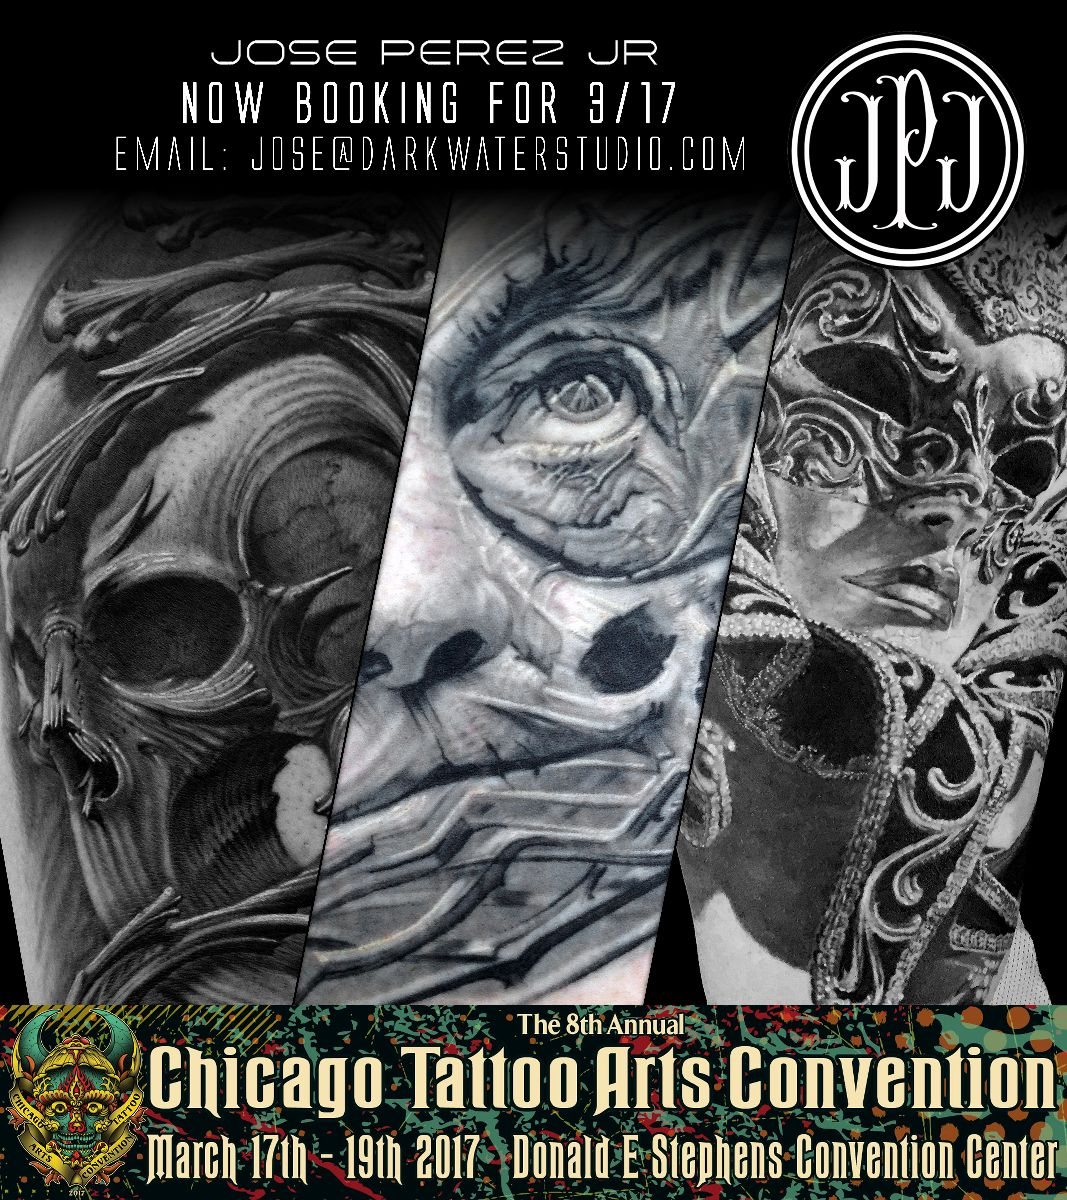 Chicago Tattoo Arts Convention